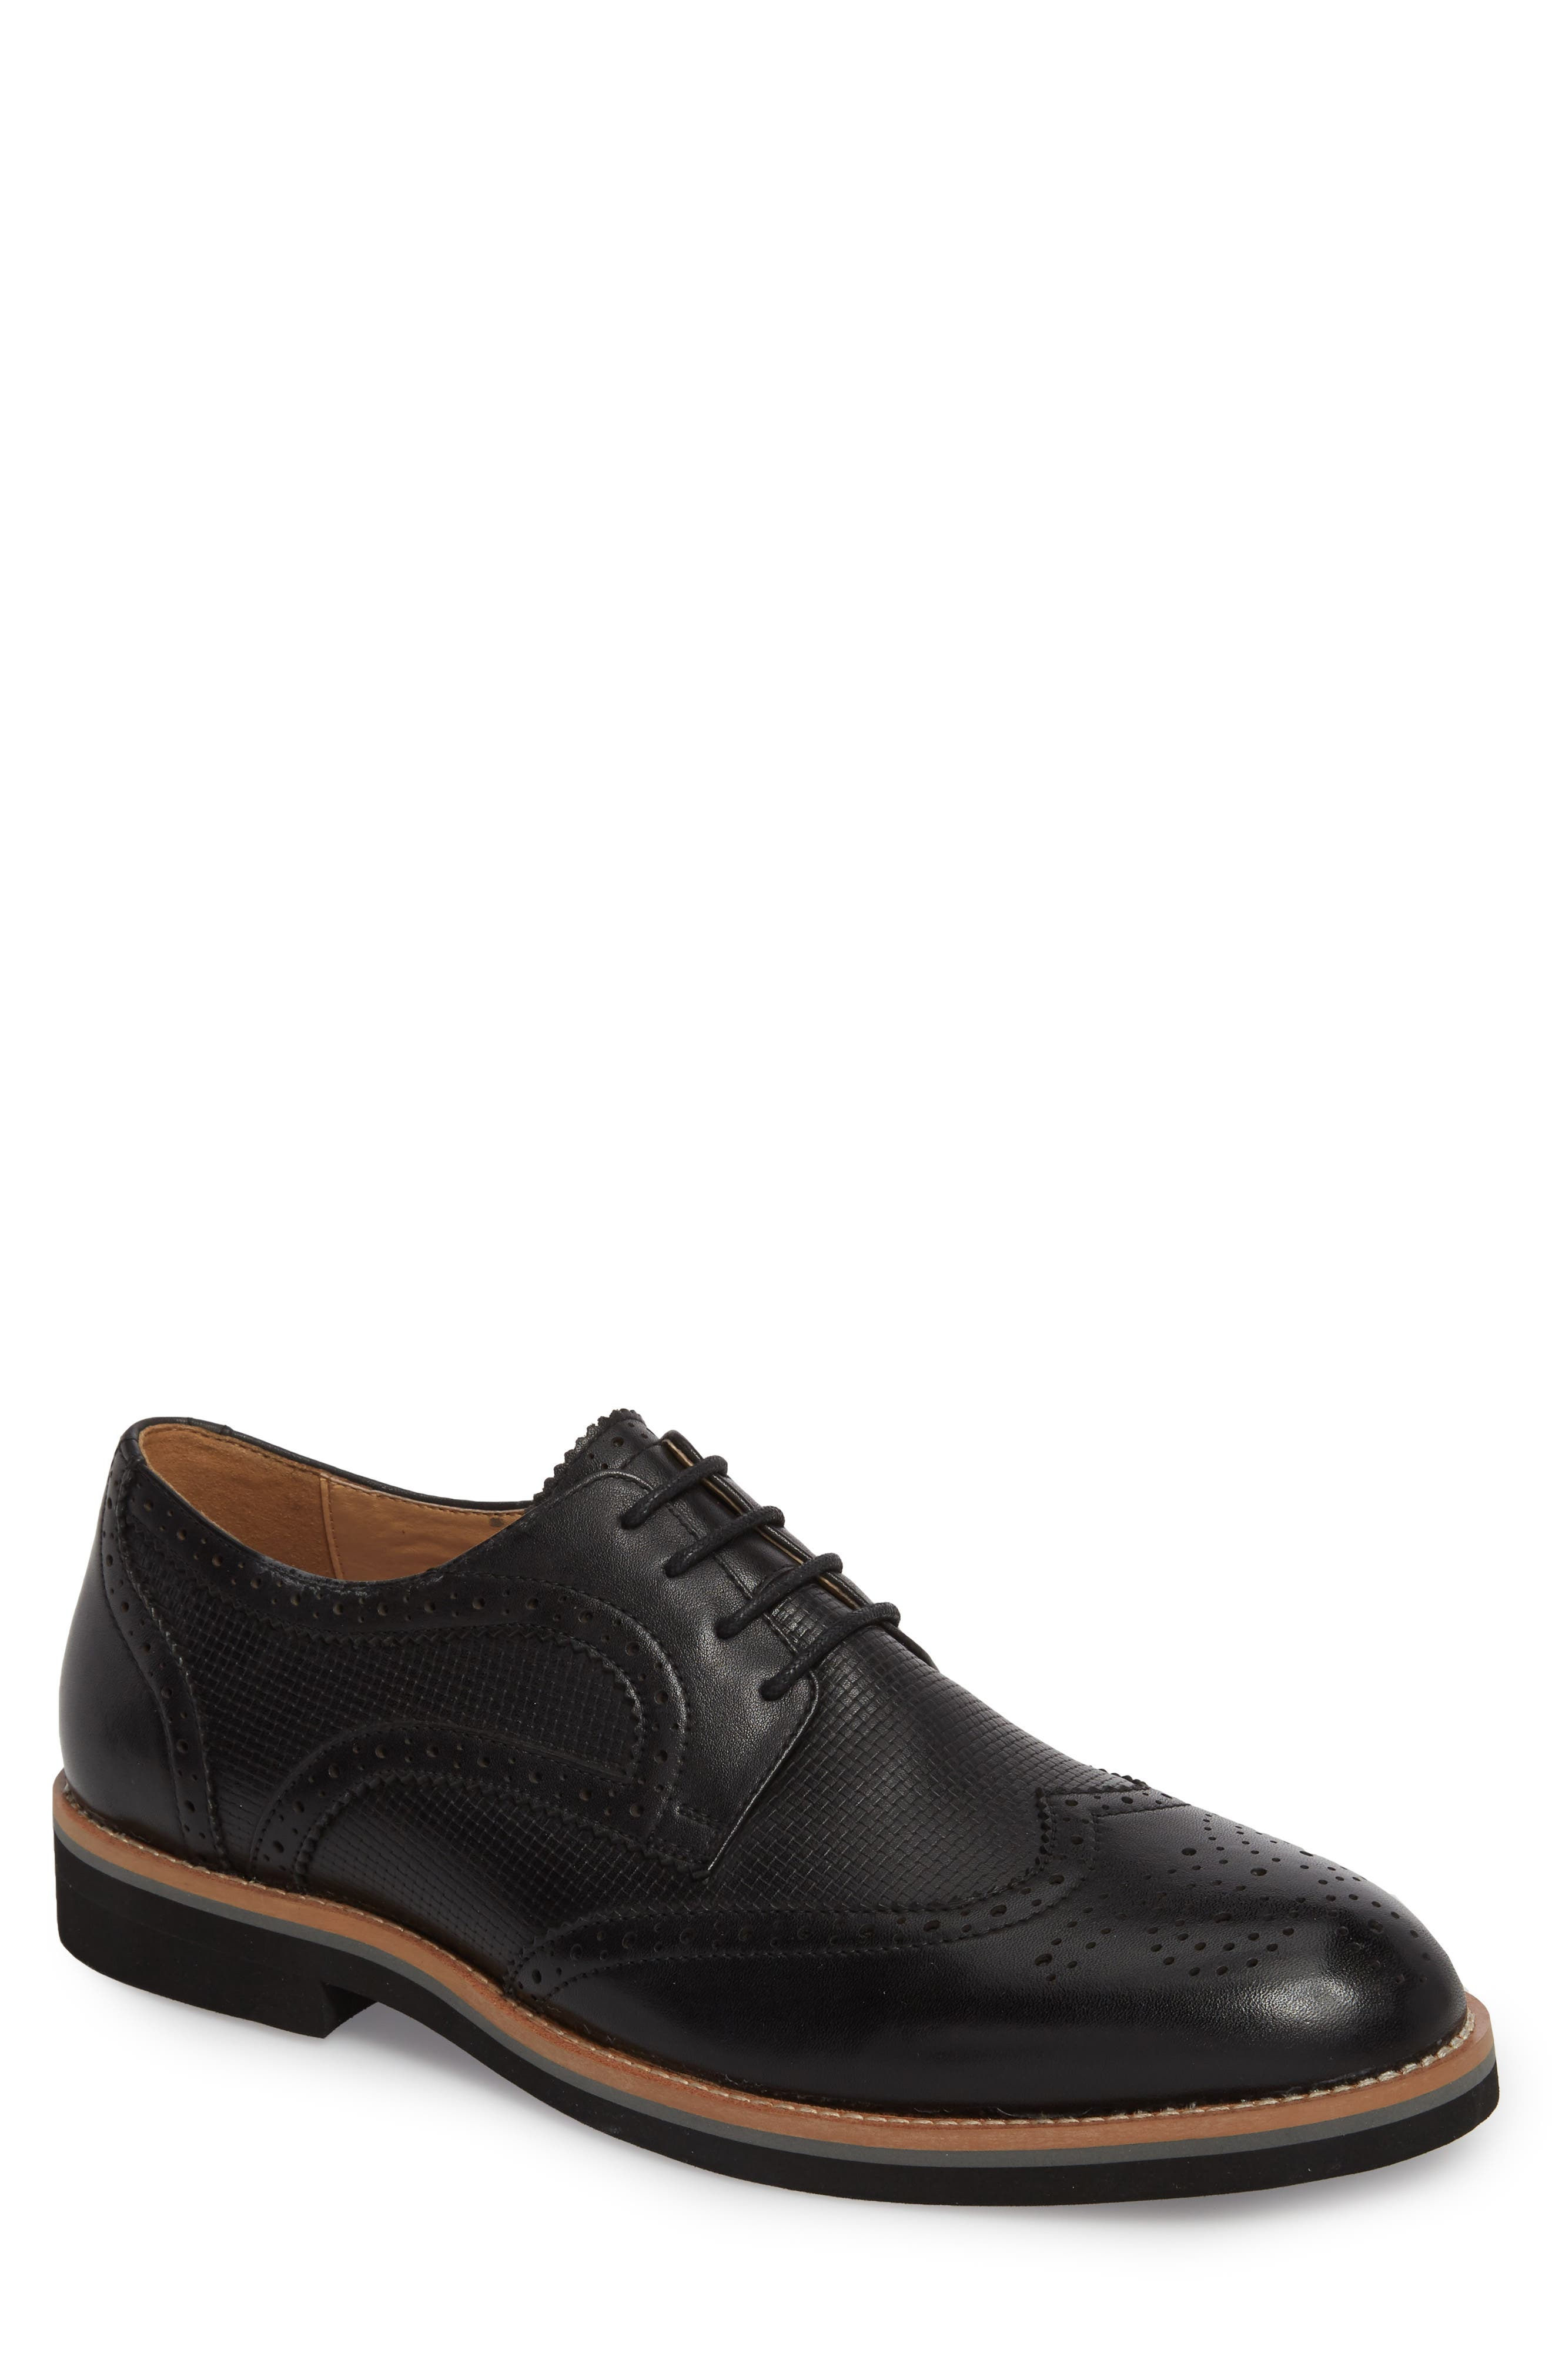 Cleave Embossed Wingtip,                         Main,                         color, BLACK LEATHER